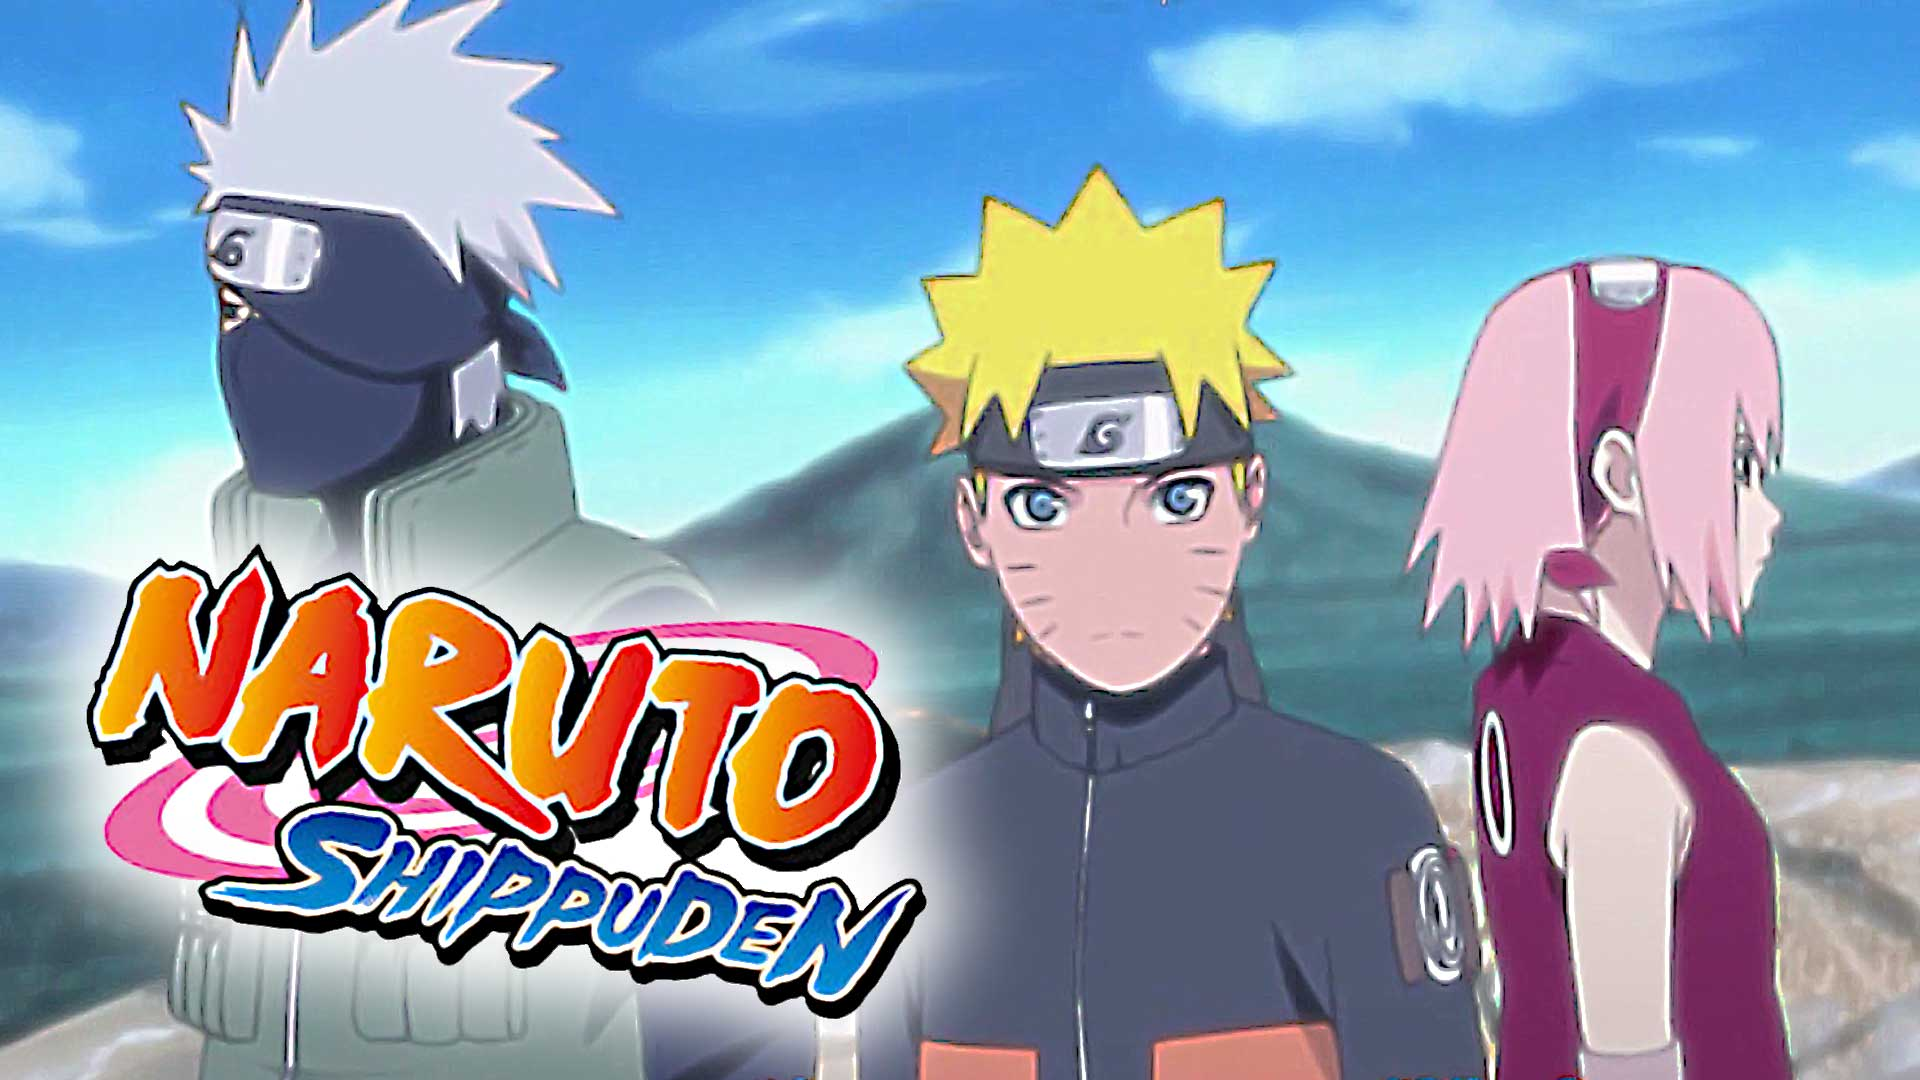 naruto shippuden streaming